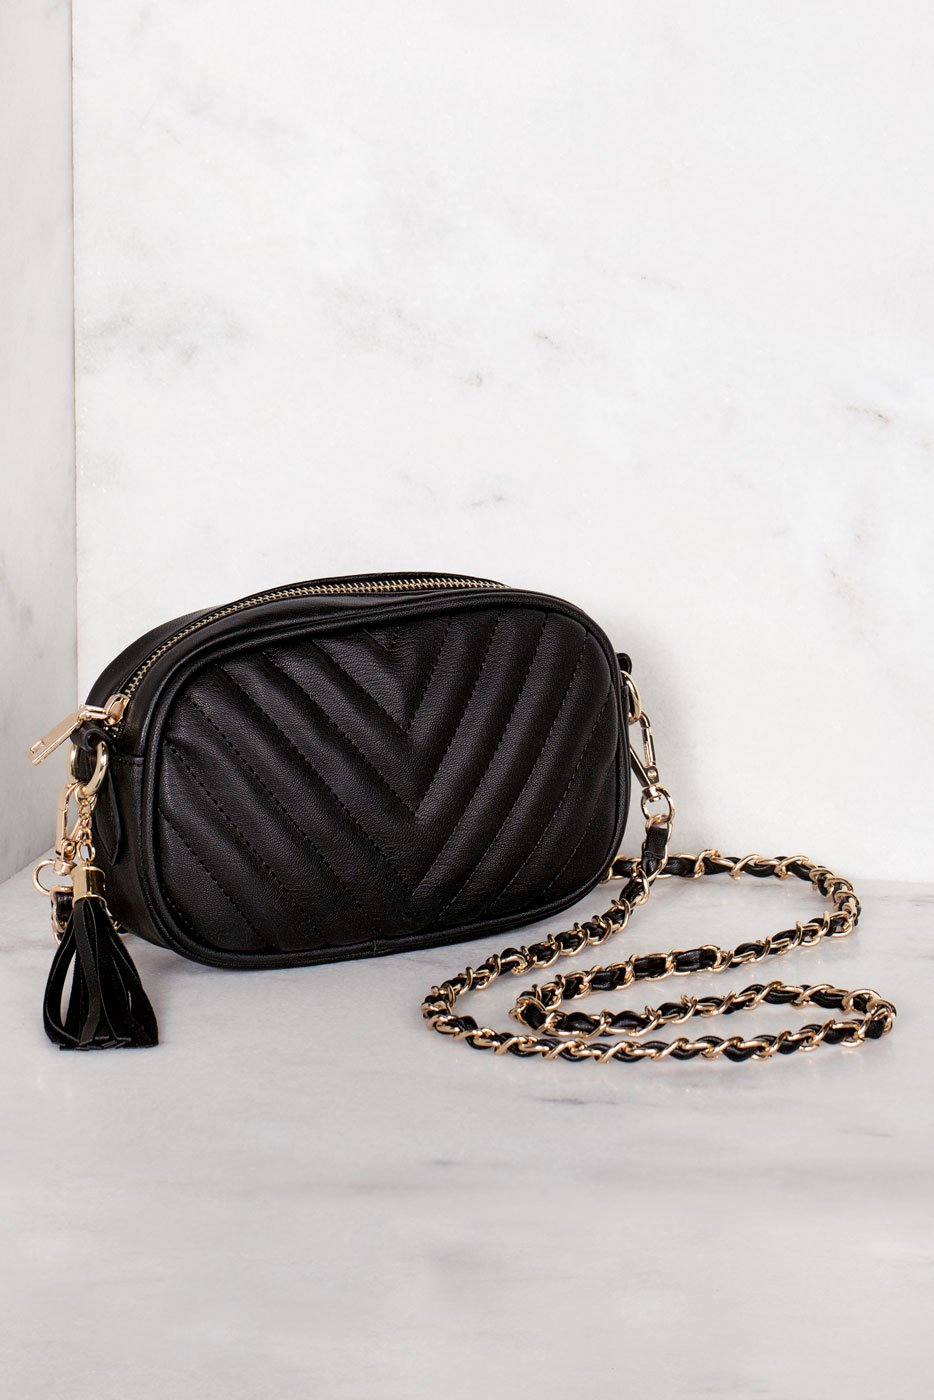 Accessories - Aster Black Vegan Leather Crossbody Bag